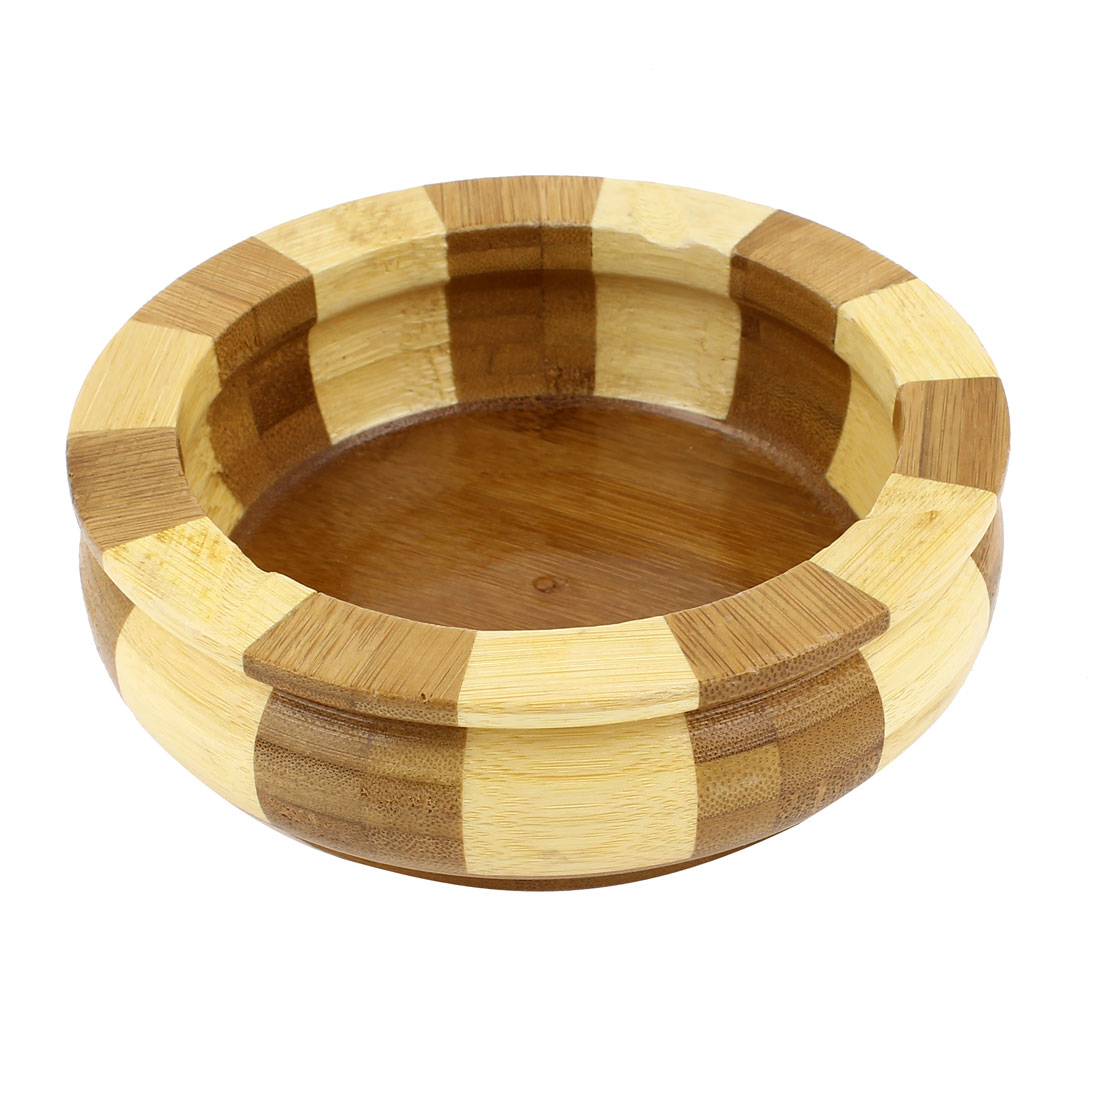 Home Office Beige Brown Bamboo Round Design Cigarette Ash Holder Ashtray